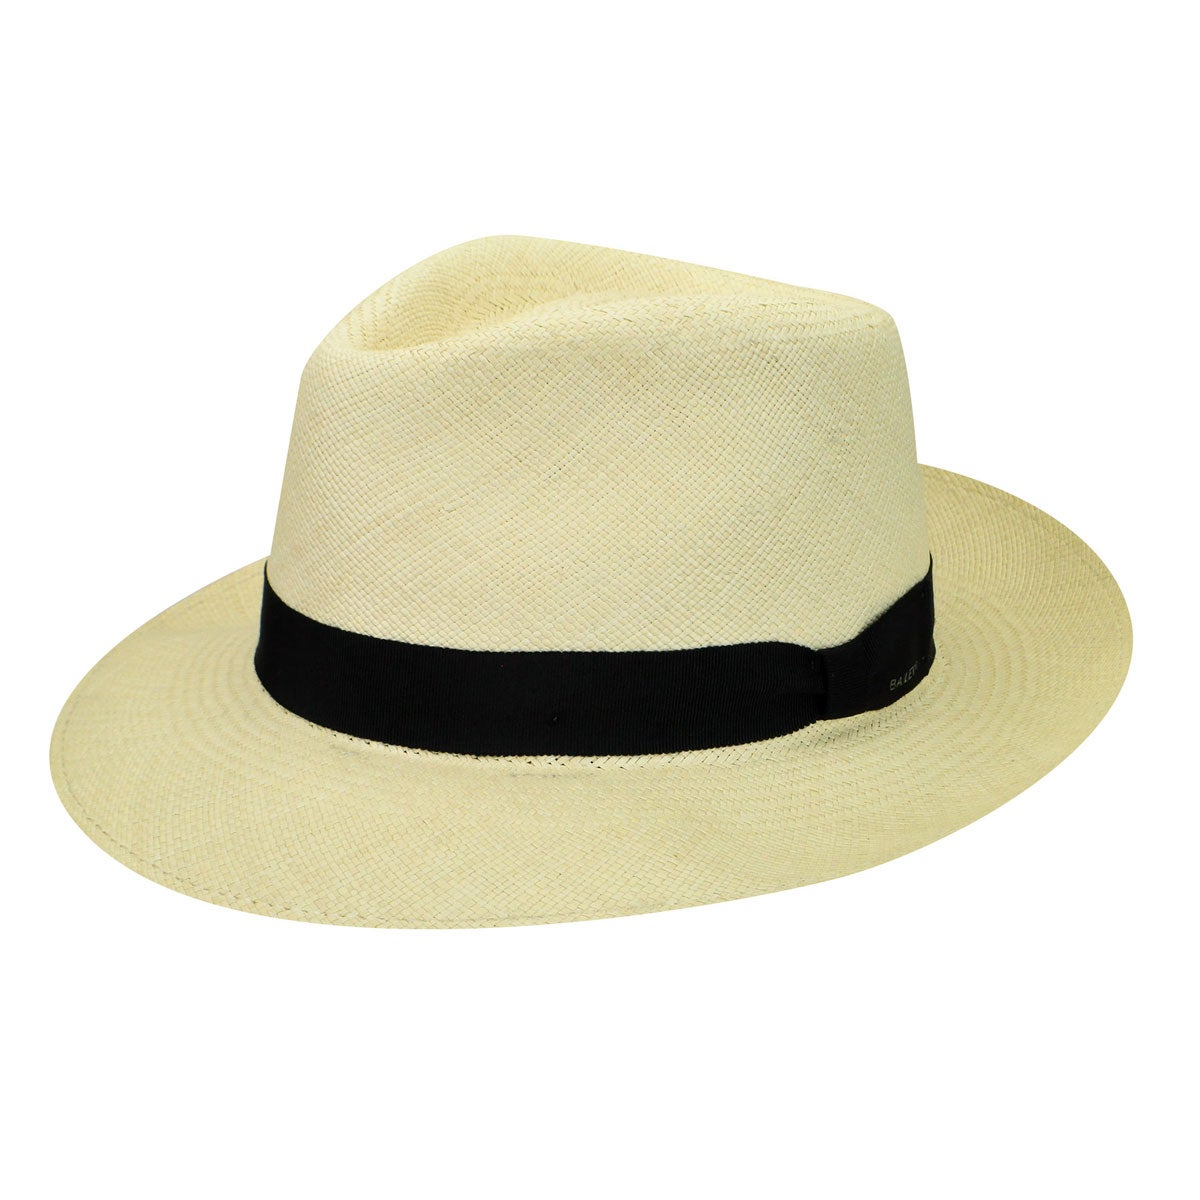 1950s Mens Hats | 50s Vintage Men's Hats Salter Panama Fedora $290.00 AT vintagedancer.com